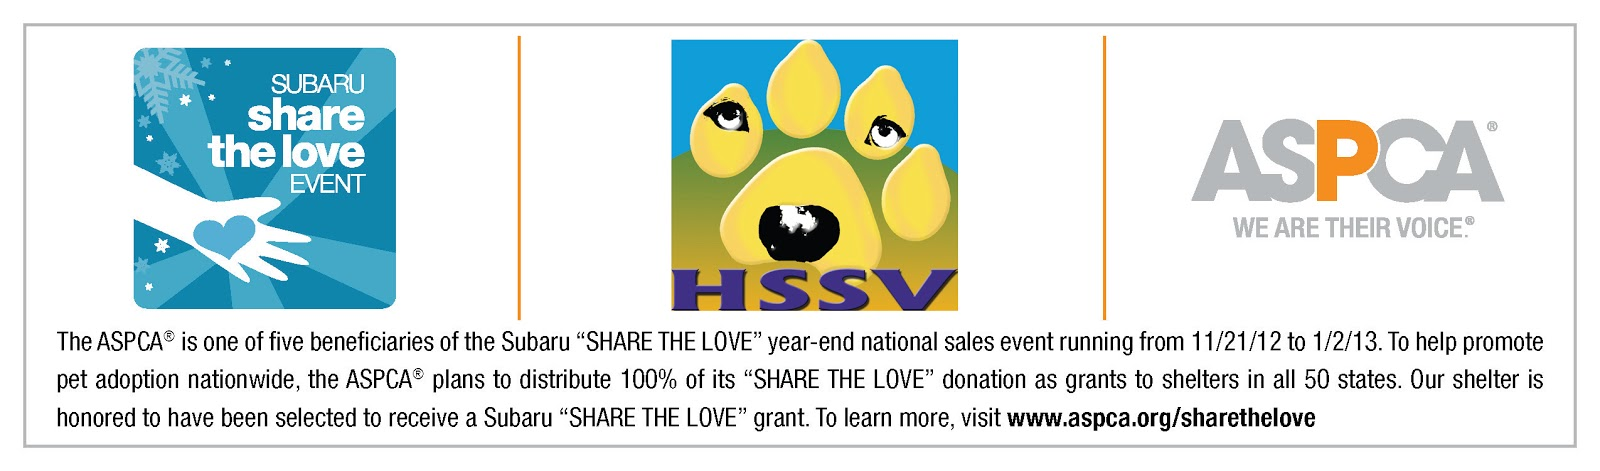 To learn more about the Share the Love campaign, visit www.aspca.org